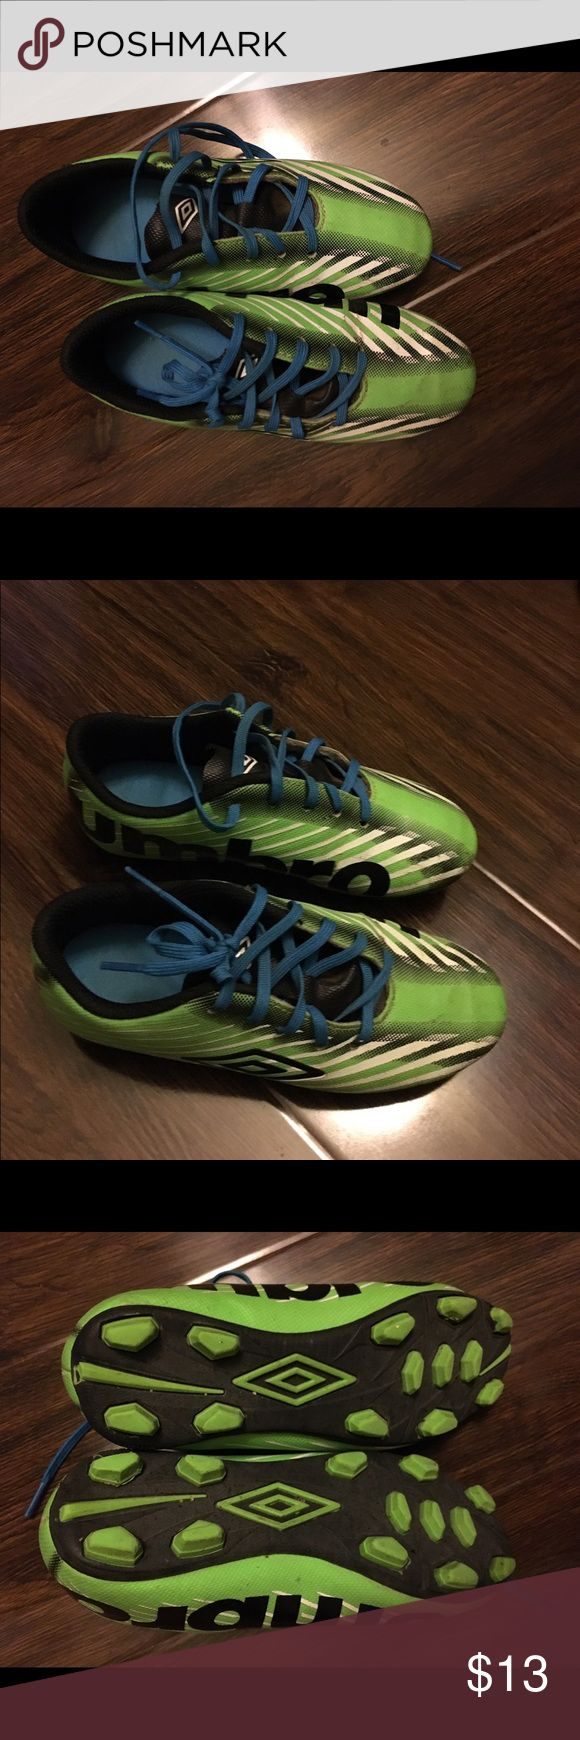 Soccer cleats boys Boys size 13 used in good condition soccer cleats Shoes